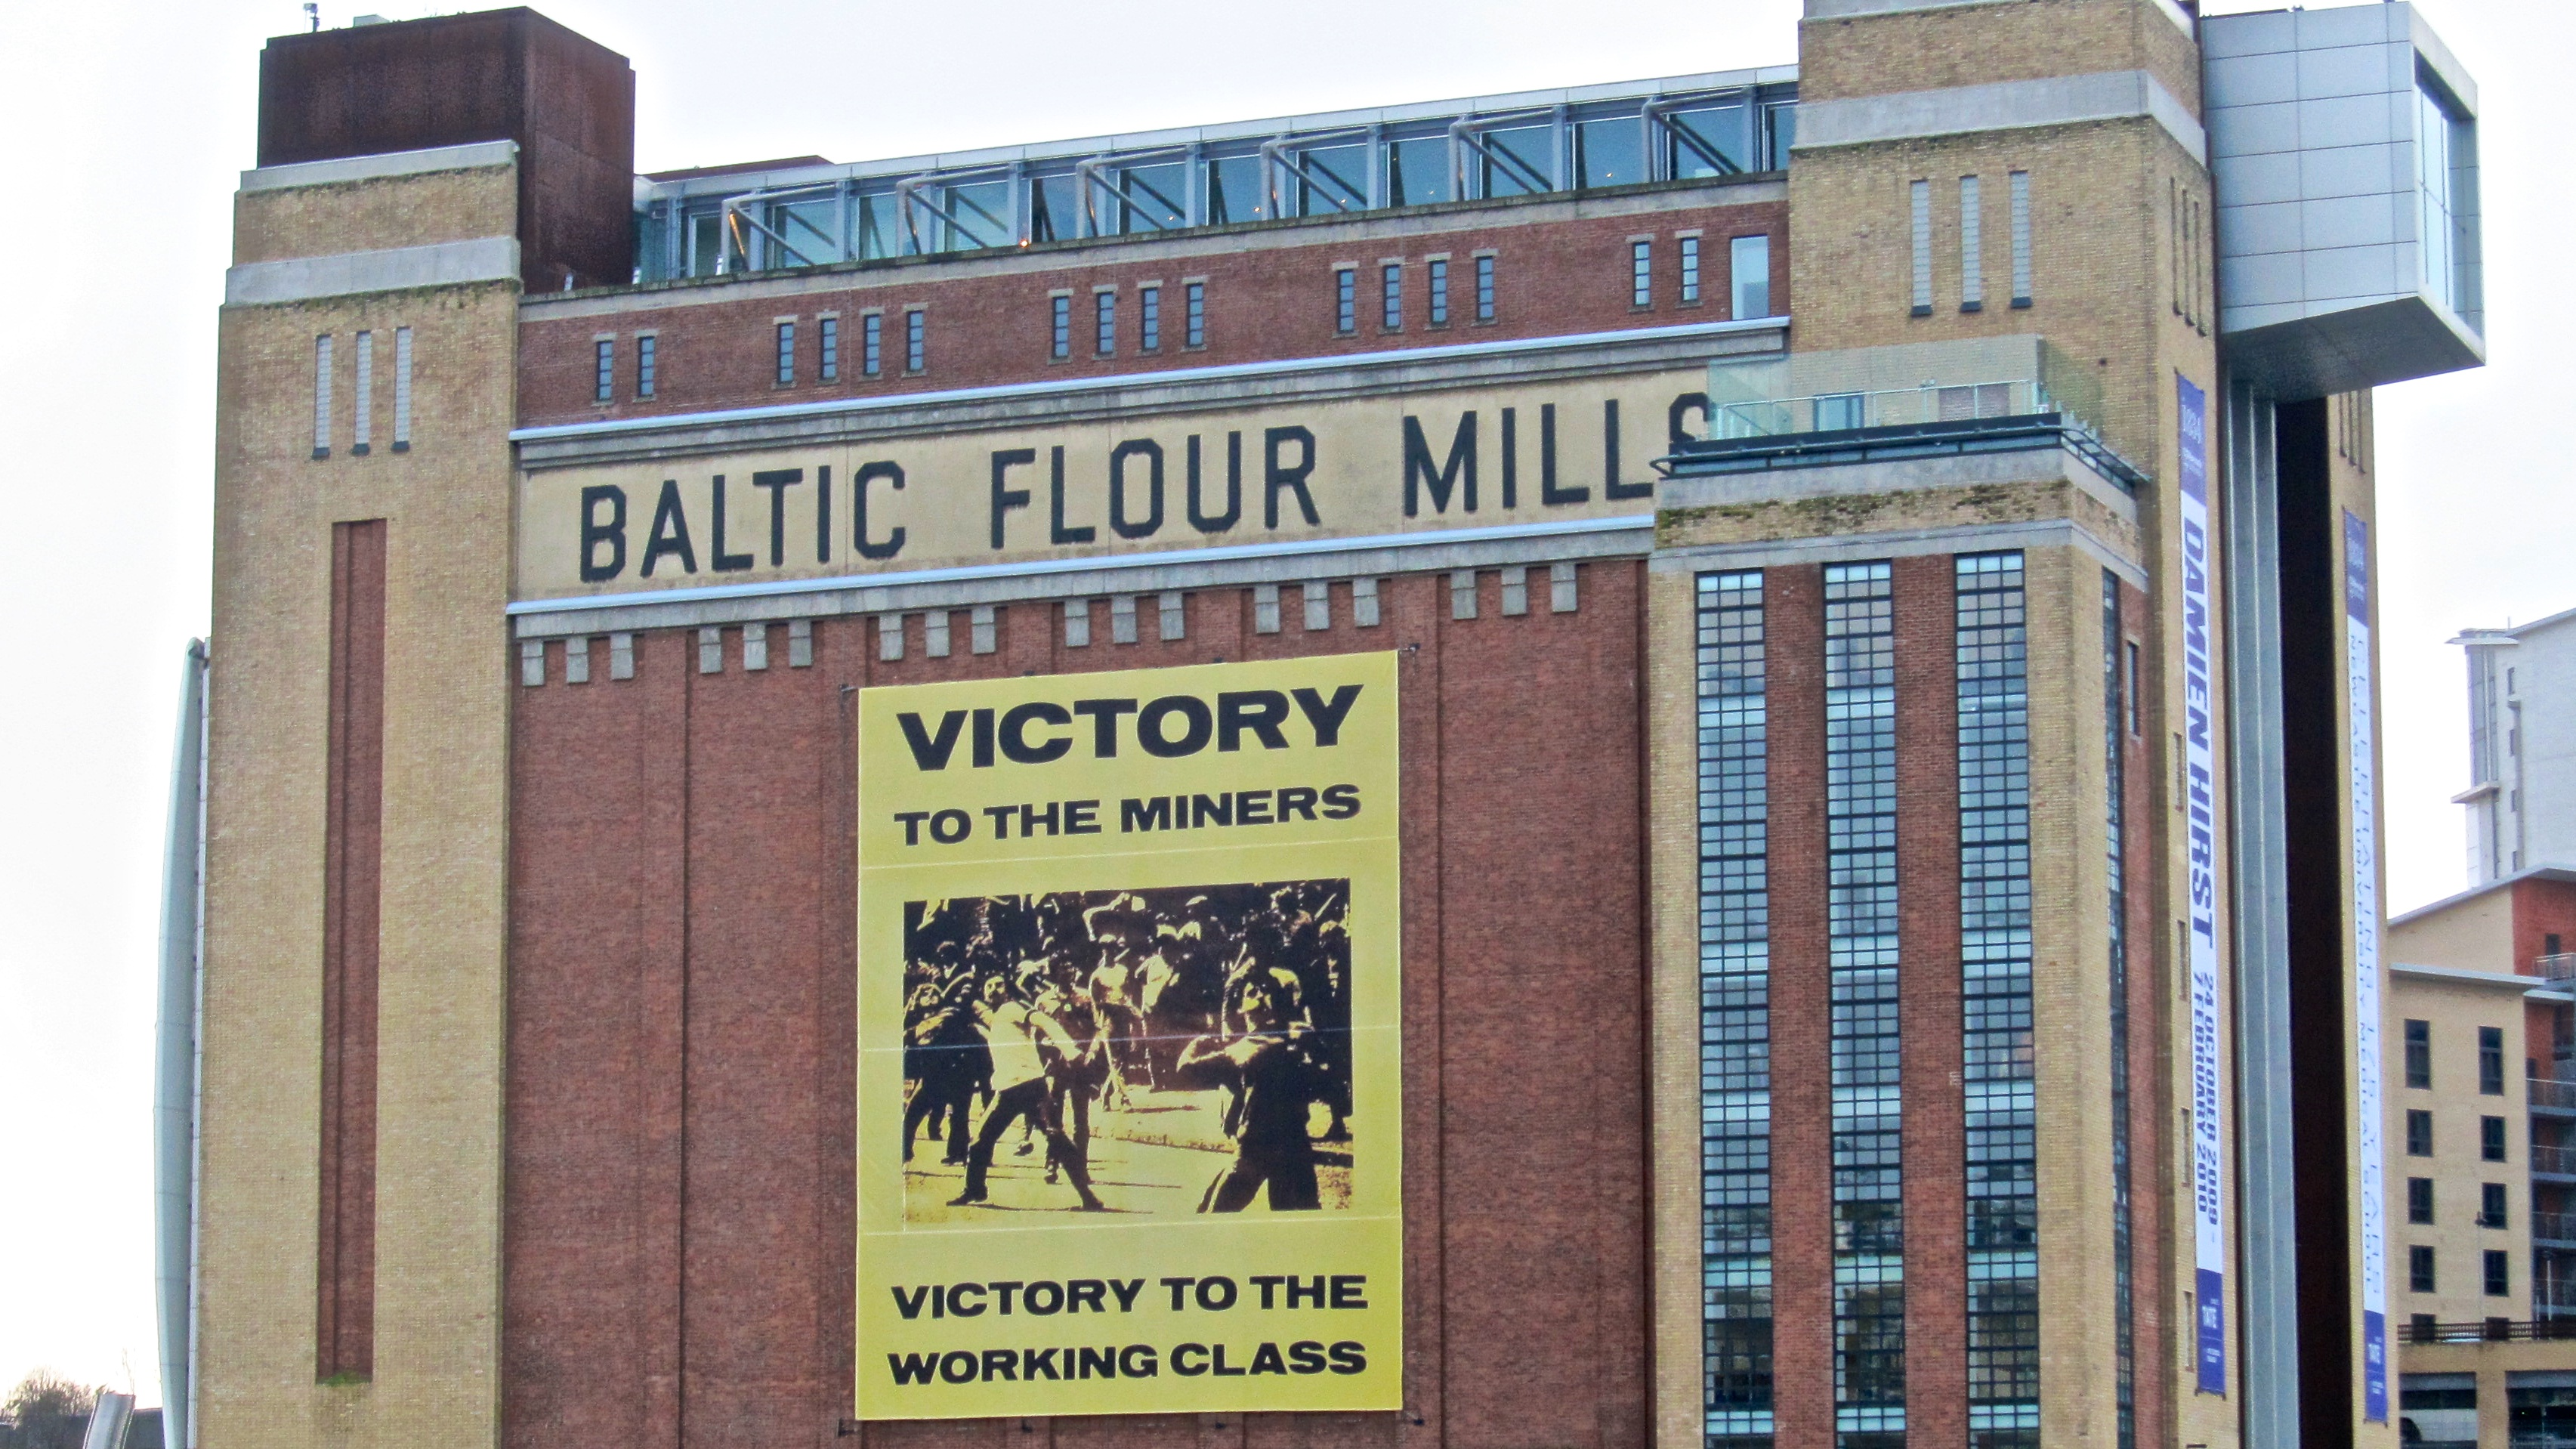 Newcastle_BalticFlour